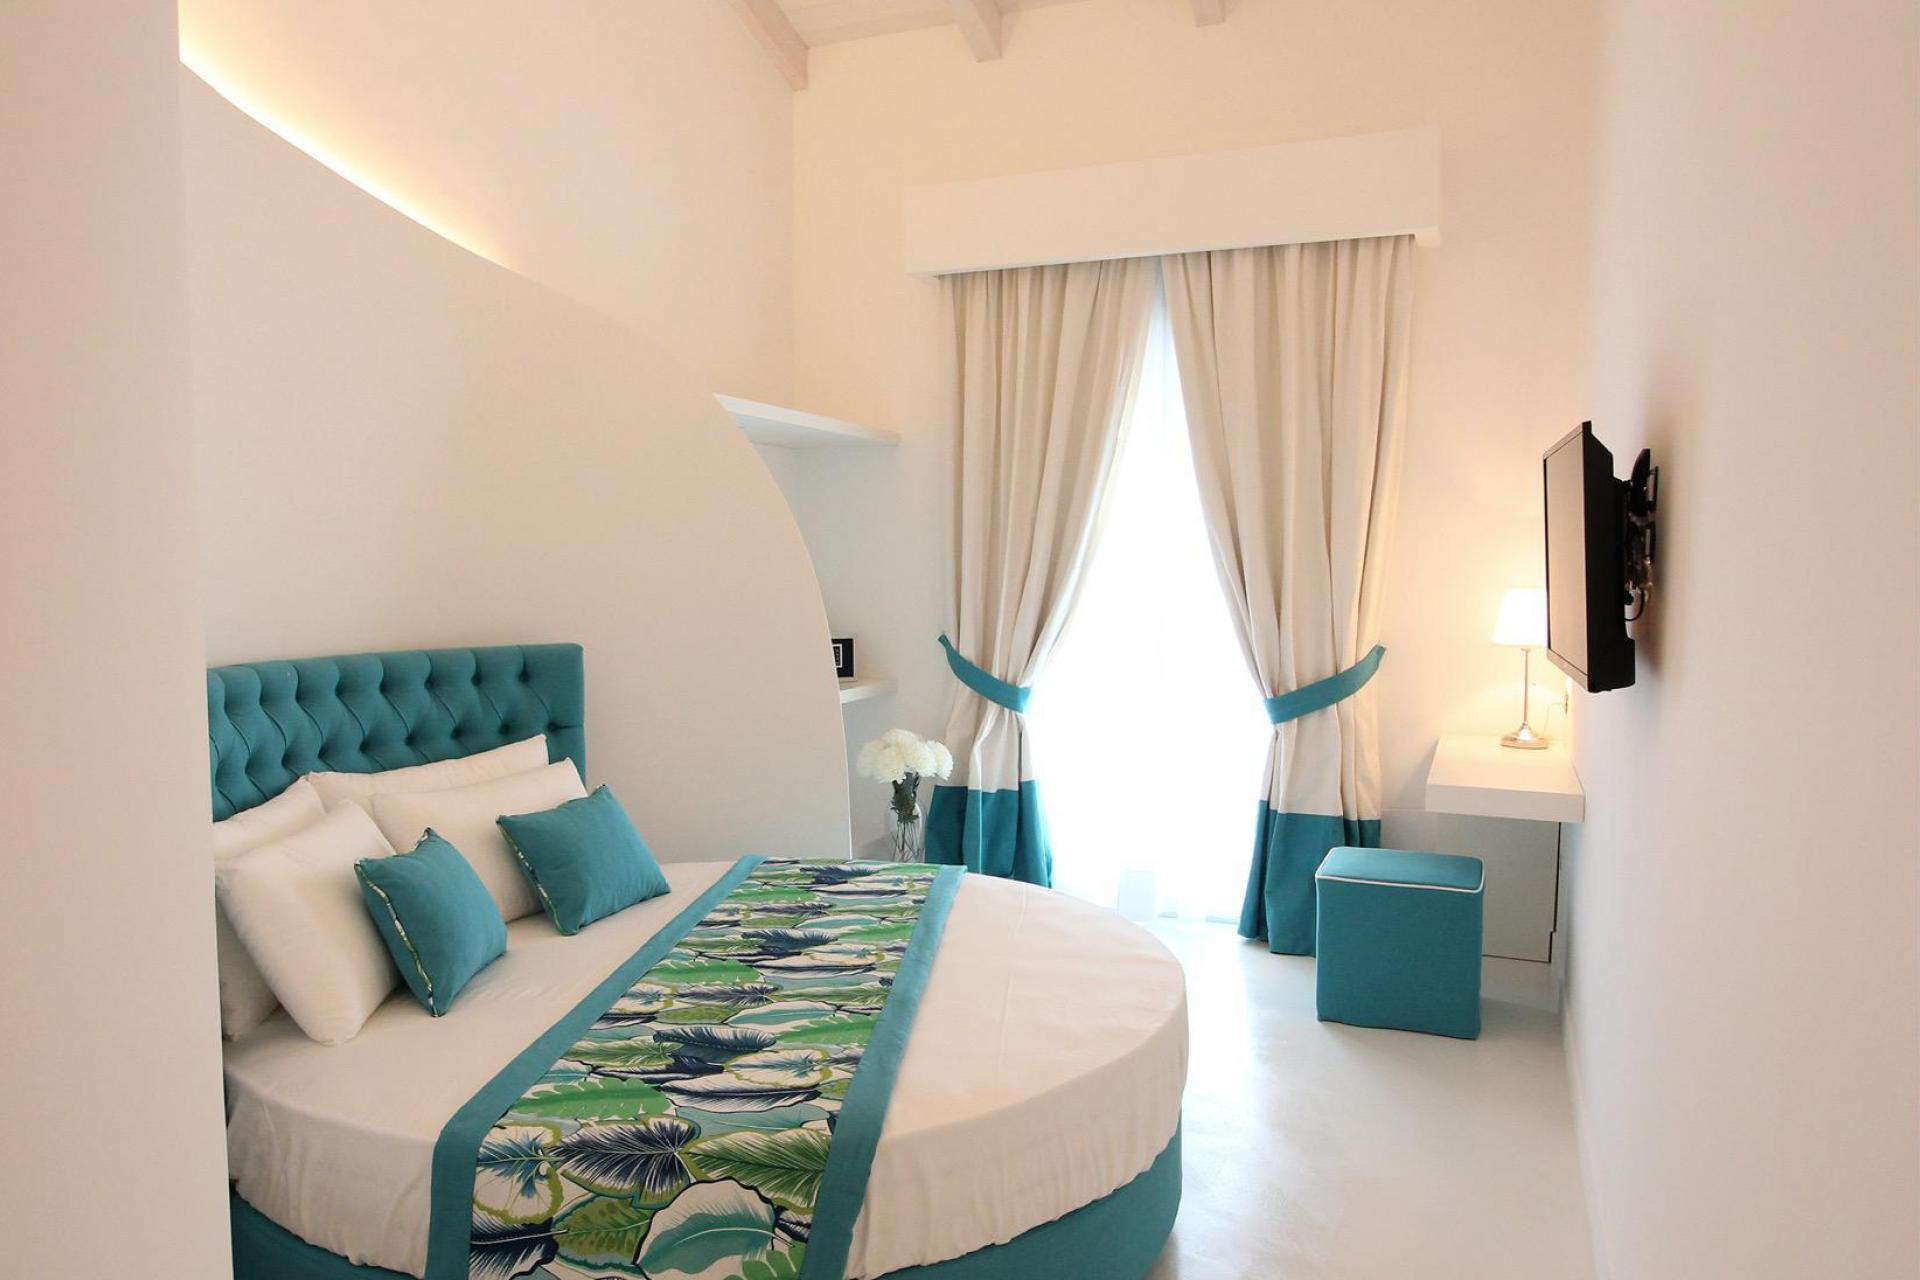 Agriturismo Calabria Beautiful B&B in Calabria not far from the beach